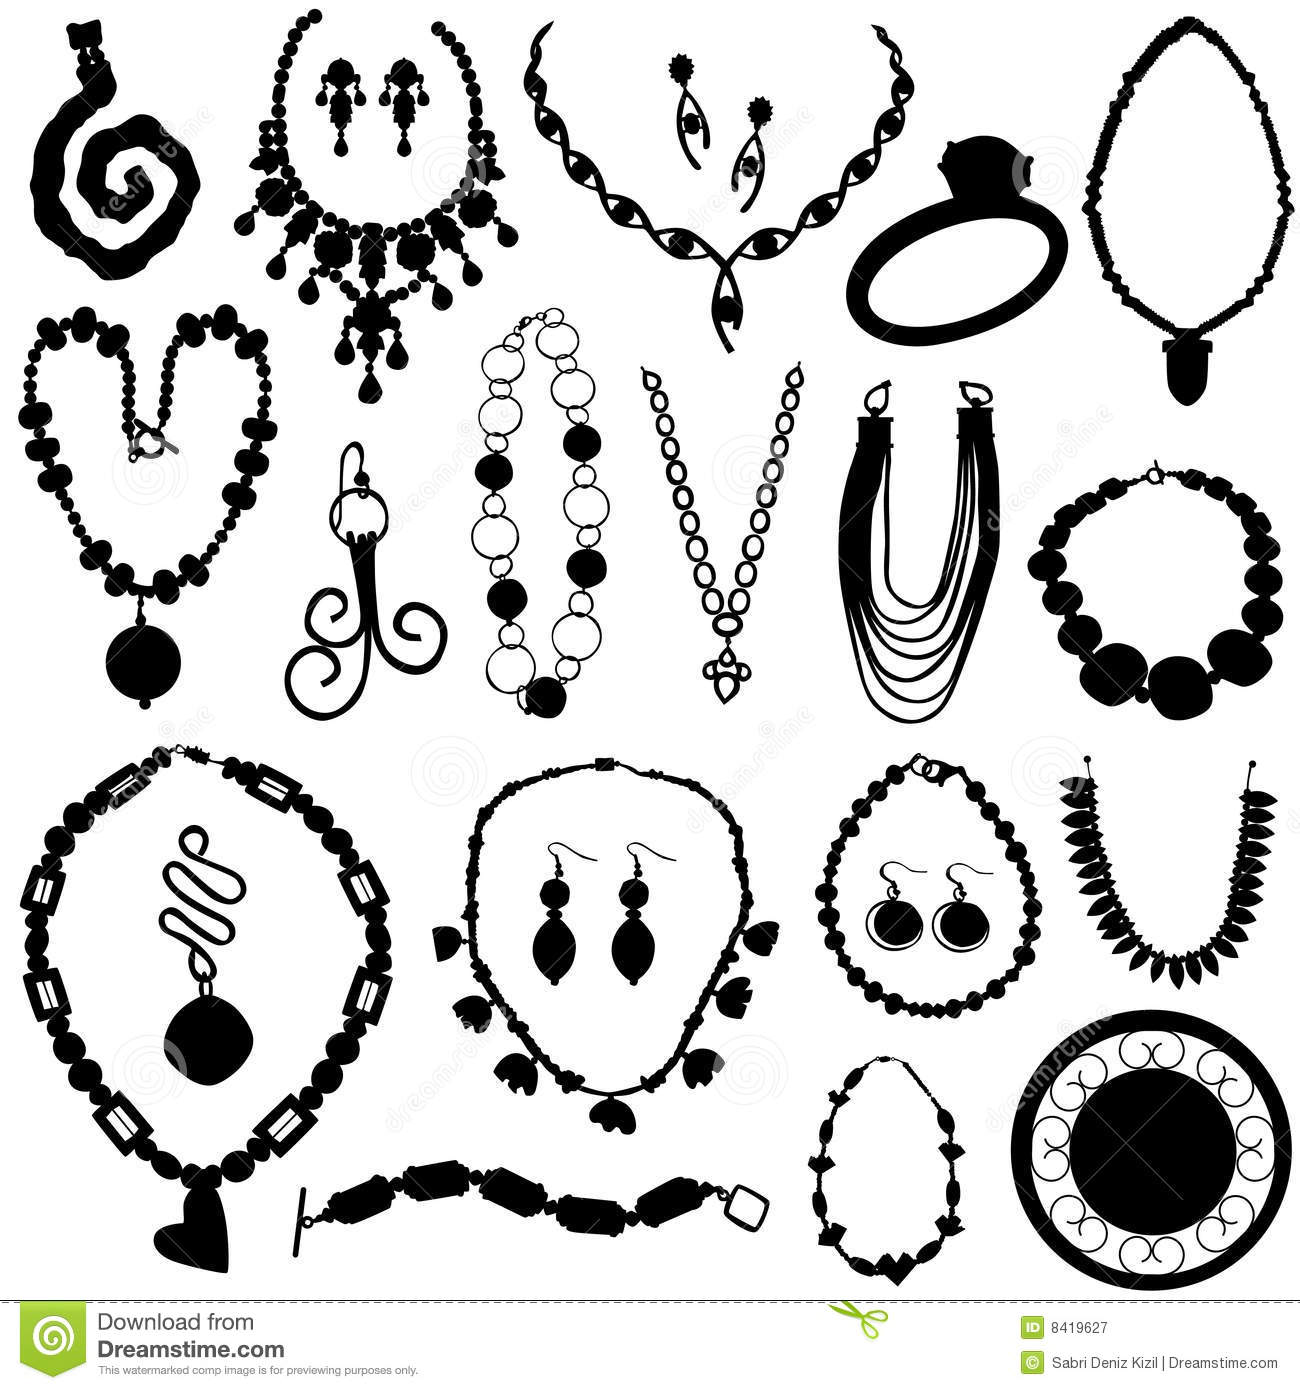 royalty free jewelry images auto electrical wiring diagram 94 Toyota Pickup Wiring Diagram 2014 ram 3500 fuse box staircase wiring wikipedia toyota pickup fuse box diagram jeep patriot wire harness fuse box diagram on 2004 lincoln town